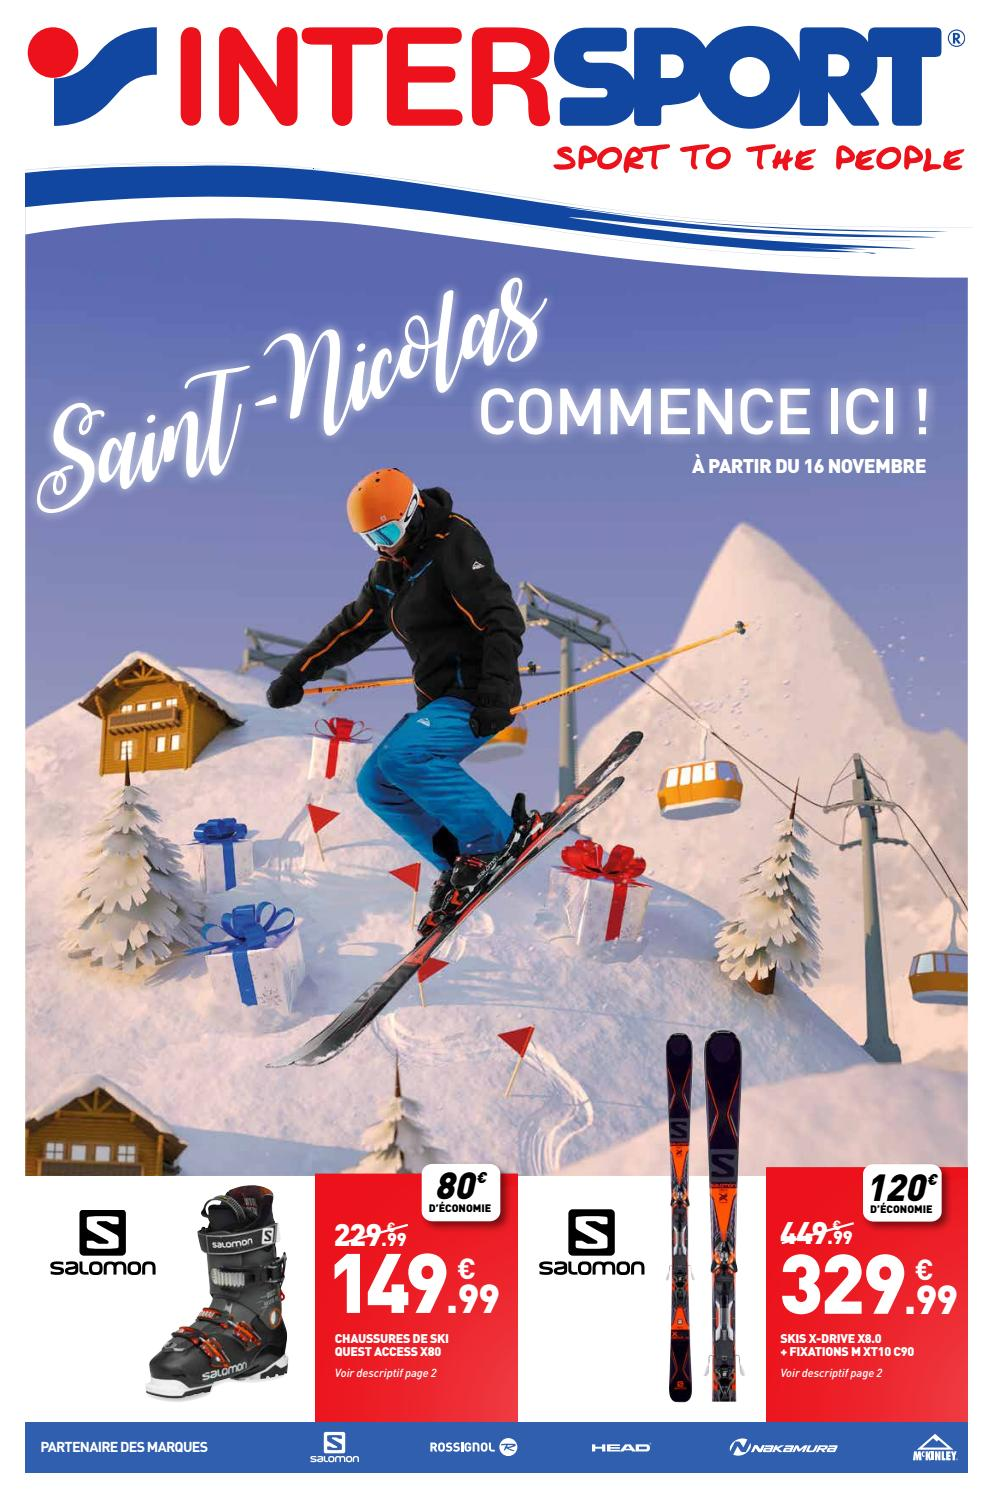 INTERSPORT LIEGE – SAINT-NICOLAS commence ici (8 pages) by ...